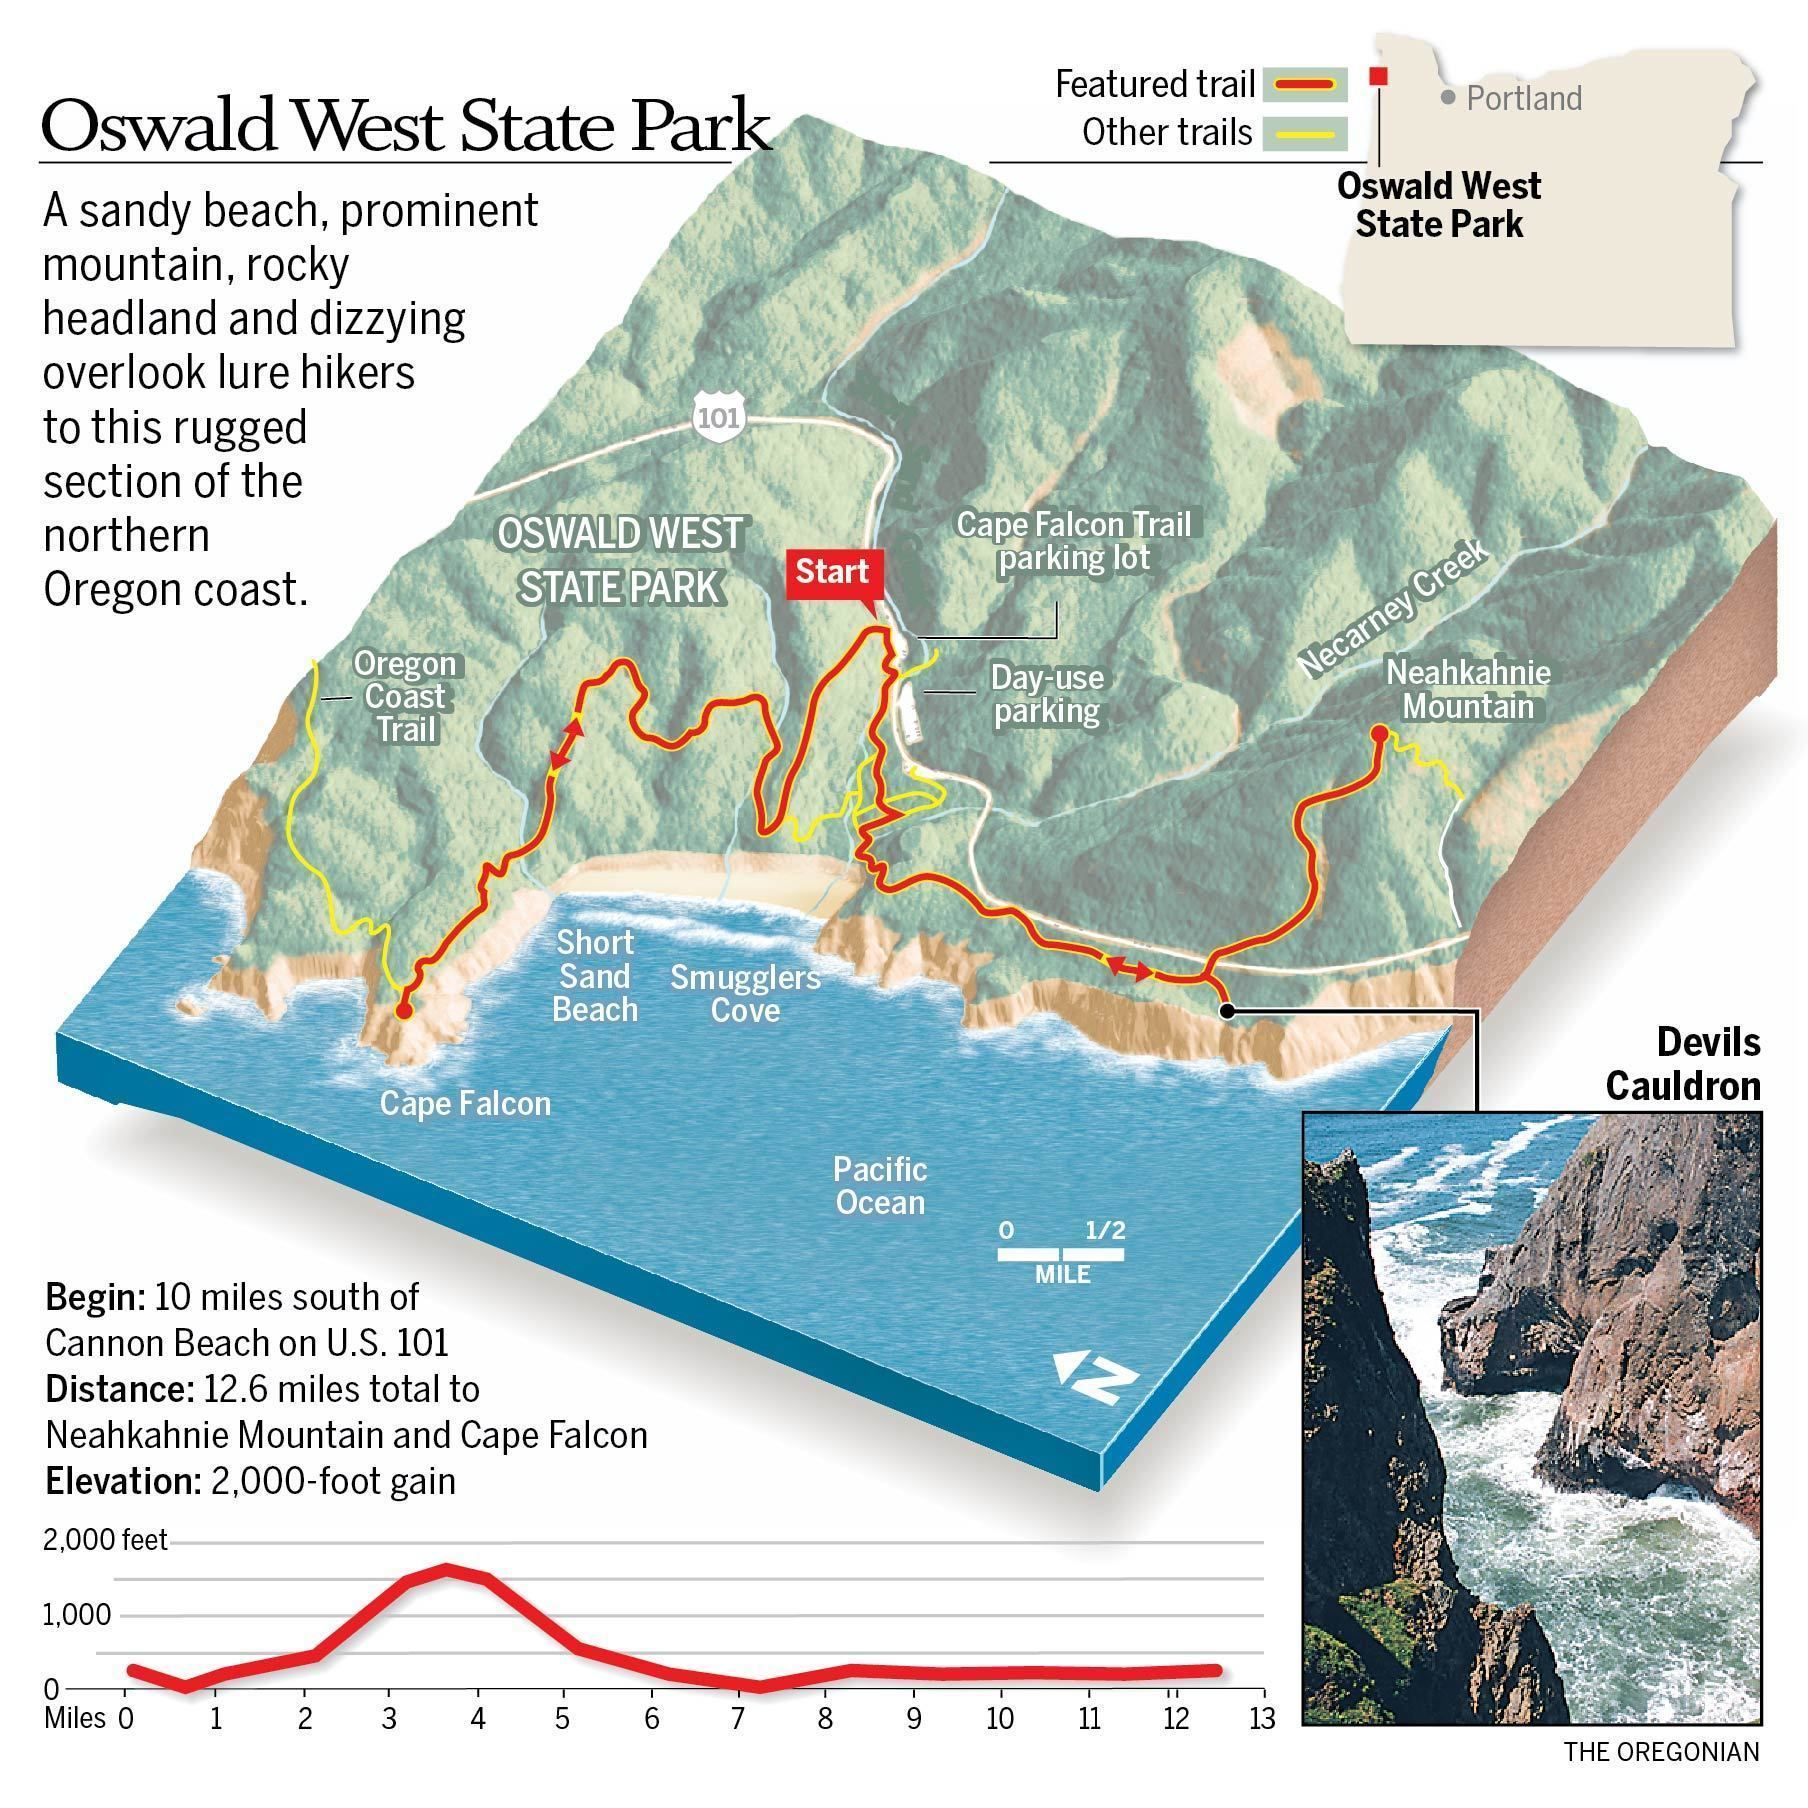 Oswald west state park tempts with neahkahnie mountain pacific oswald west state park tempts with neahkahnie mountain pacific ocean views terrys top 10 trails gumiabroncs Image collections